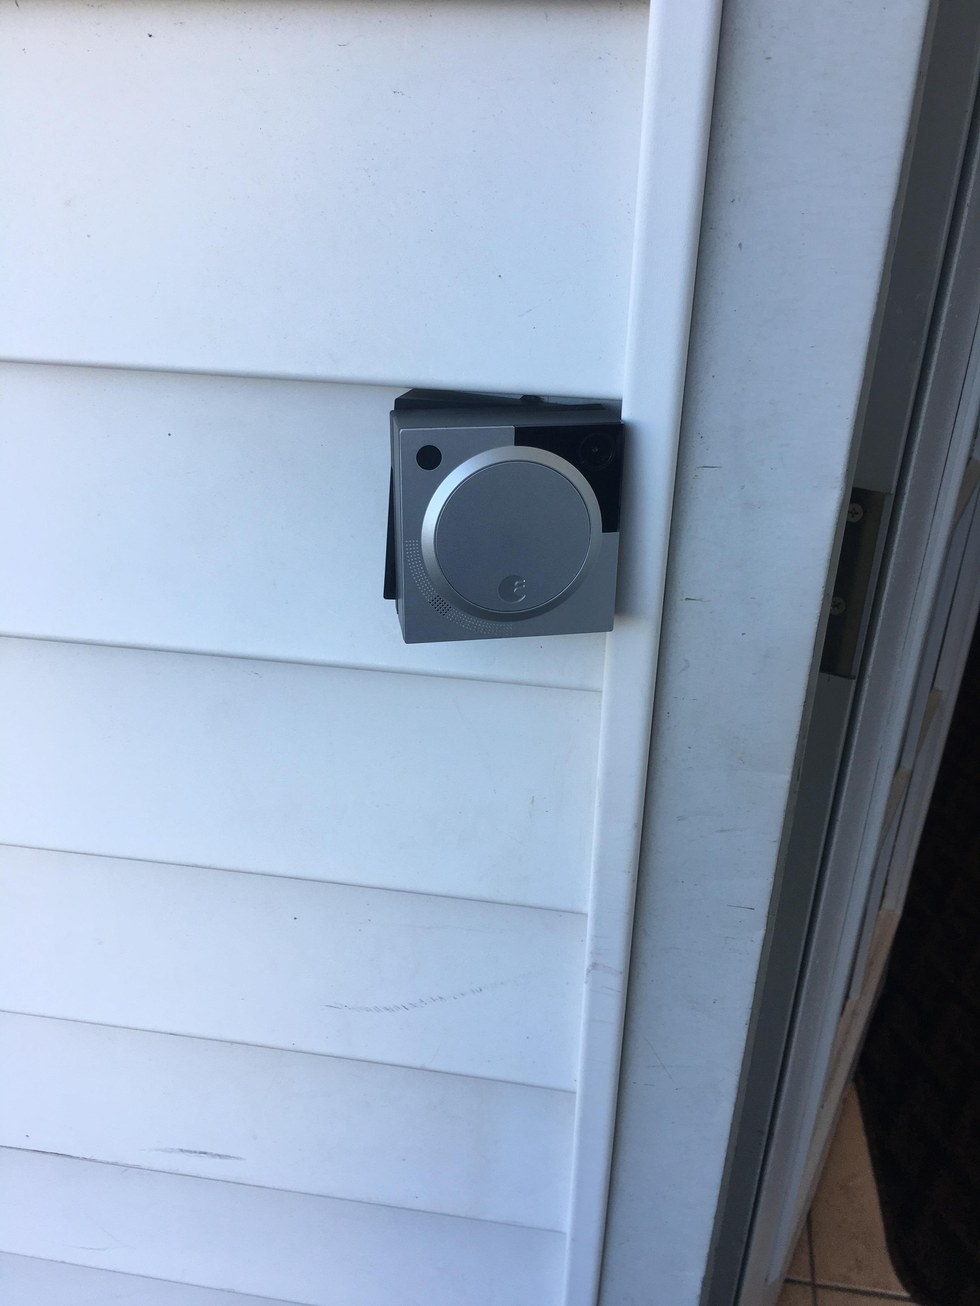 Snap on August Doorbell Cam.